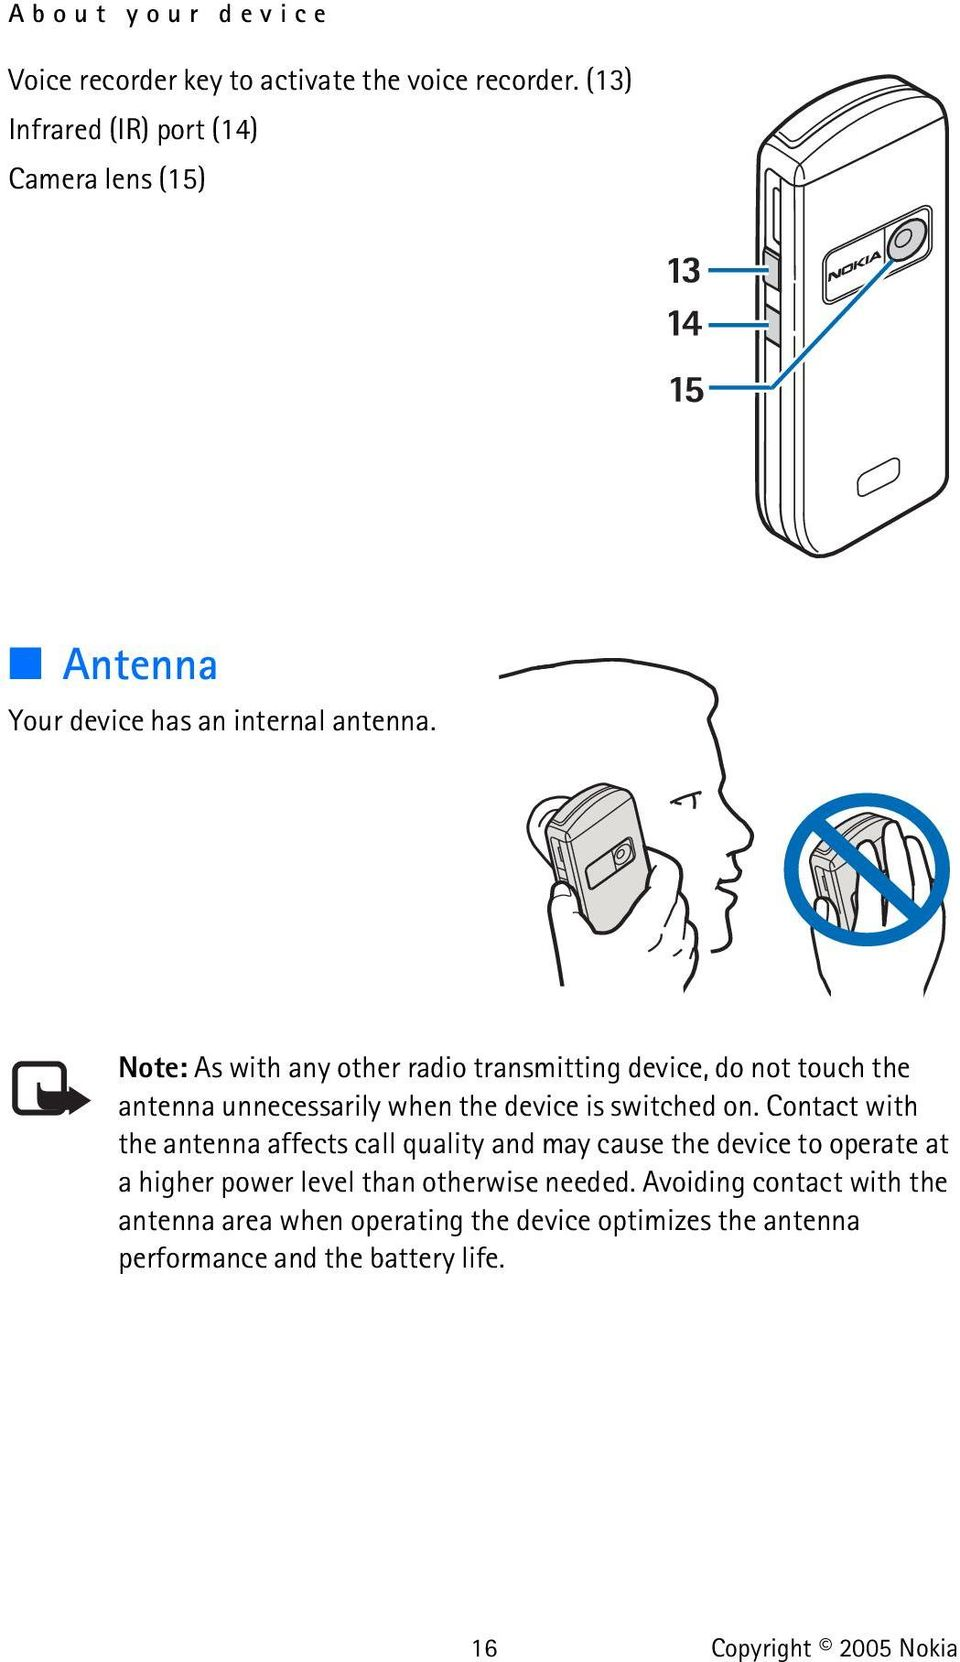 Note: As with any other radio transmitting device, do not touch the antenna unnecessarily when the device is switched on.